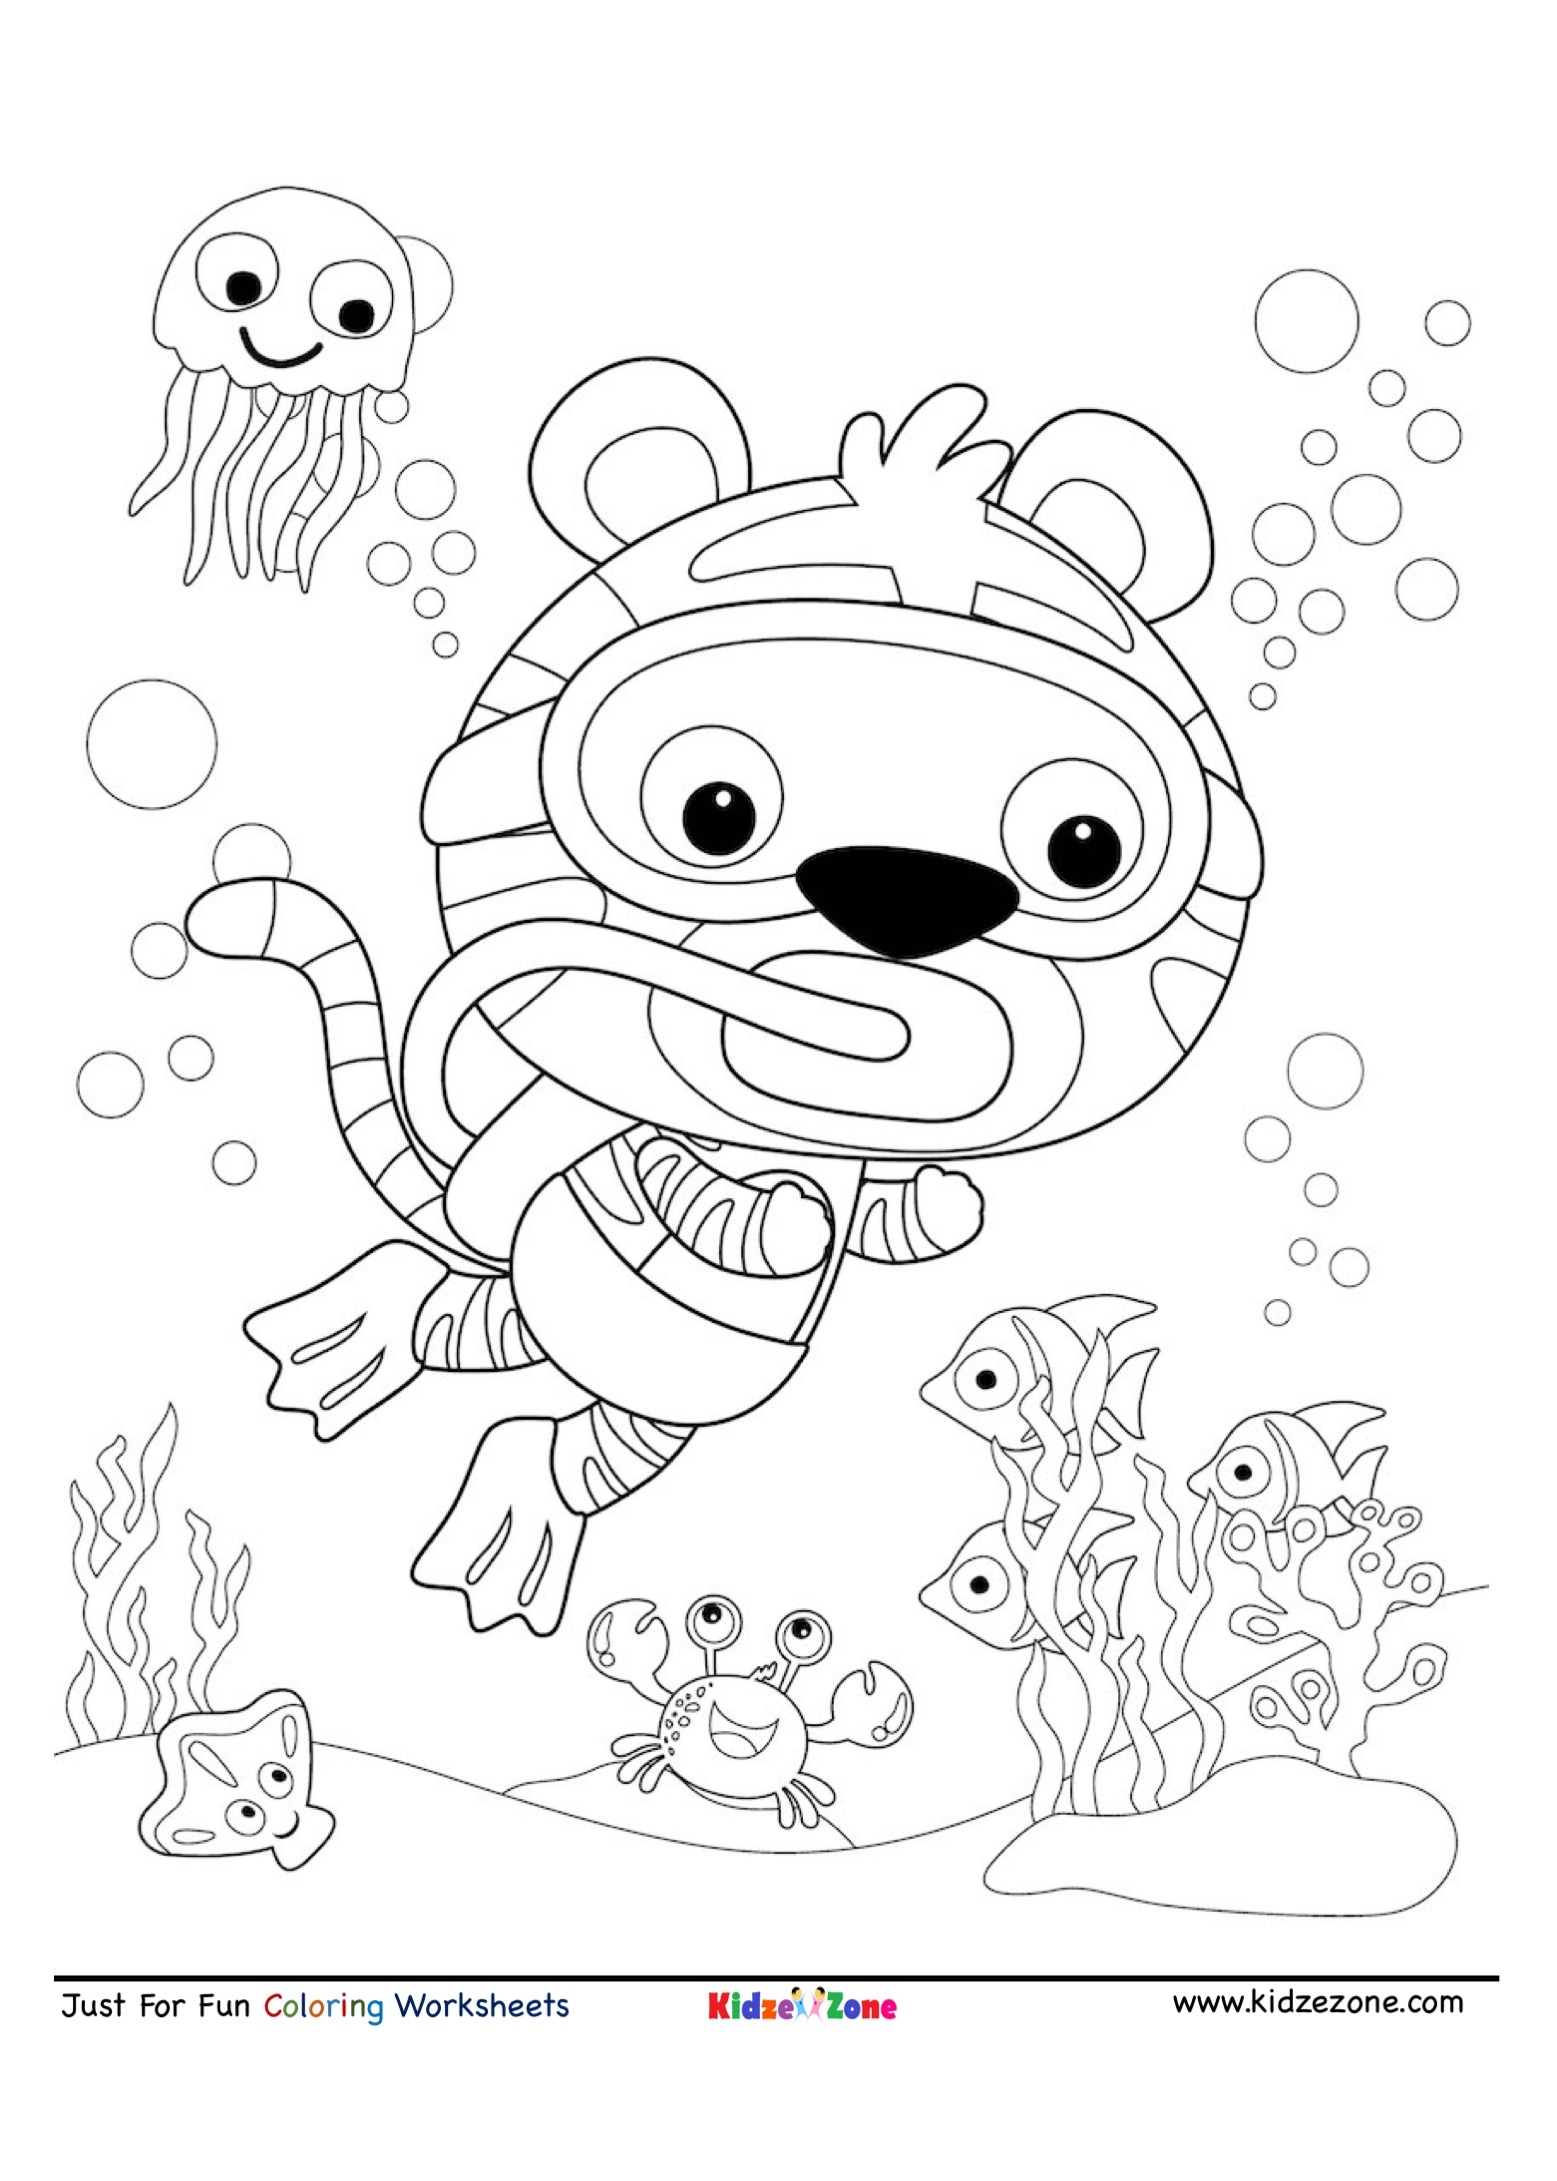 Tiger Under Water Scuba Diving Coloring Page